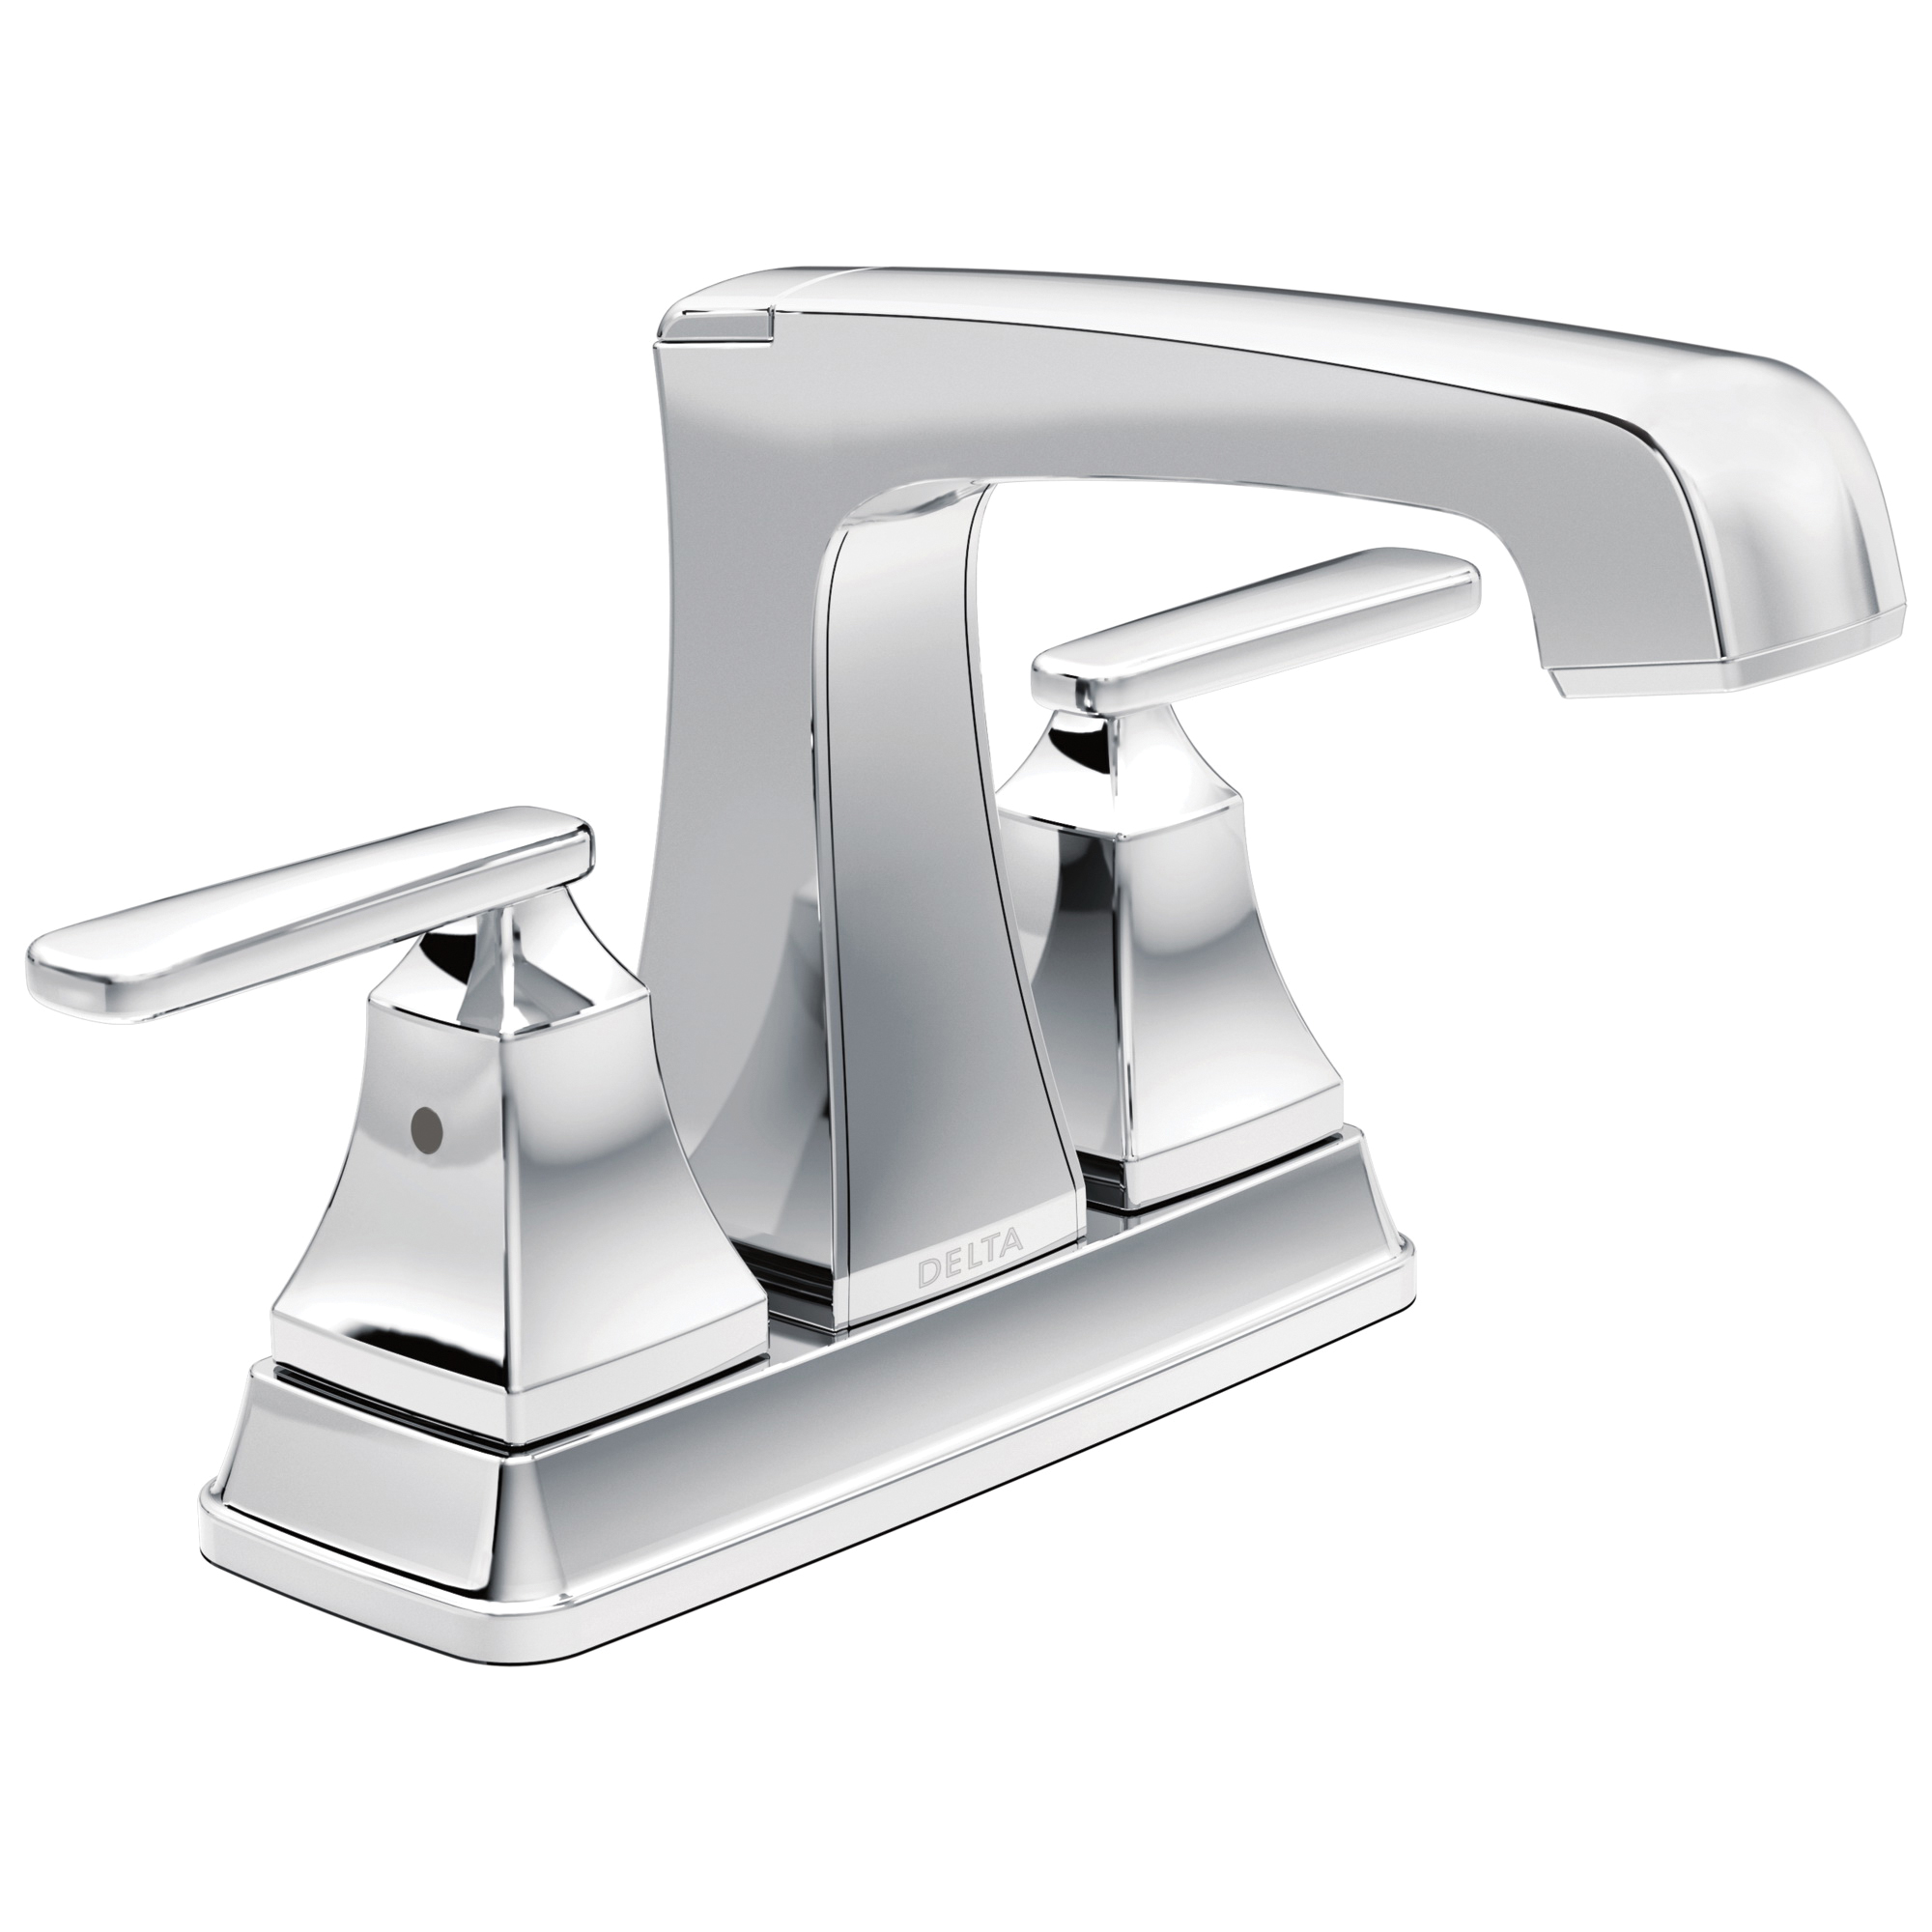 DELTA® 2564-MPU-DST Centerset Lavatory Faucet, Ashlyn®, Chrome Plated, 2 Handles, Metal Pop-Up Drain, 1.2 gpm